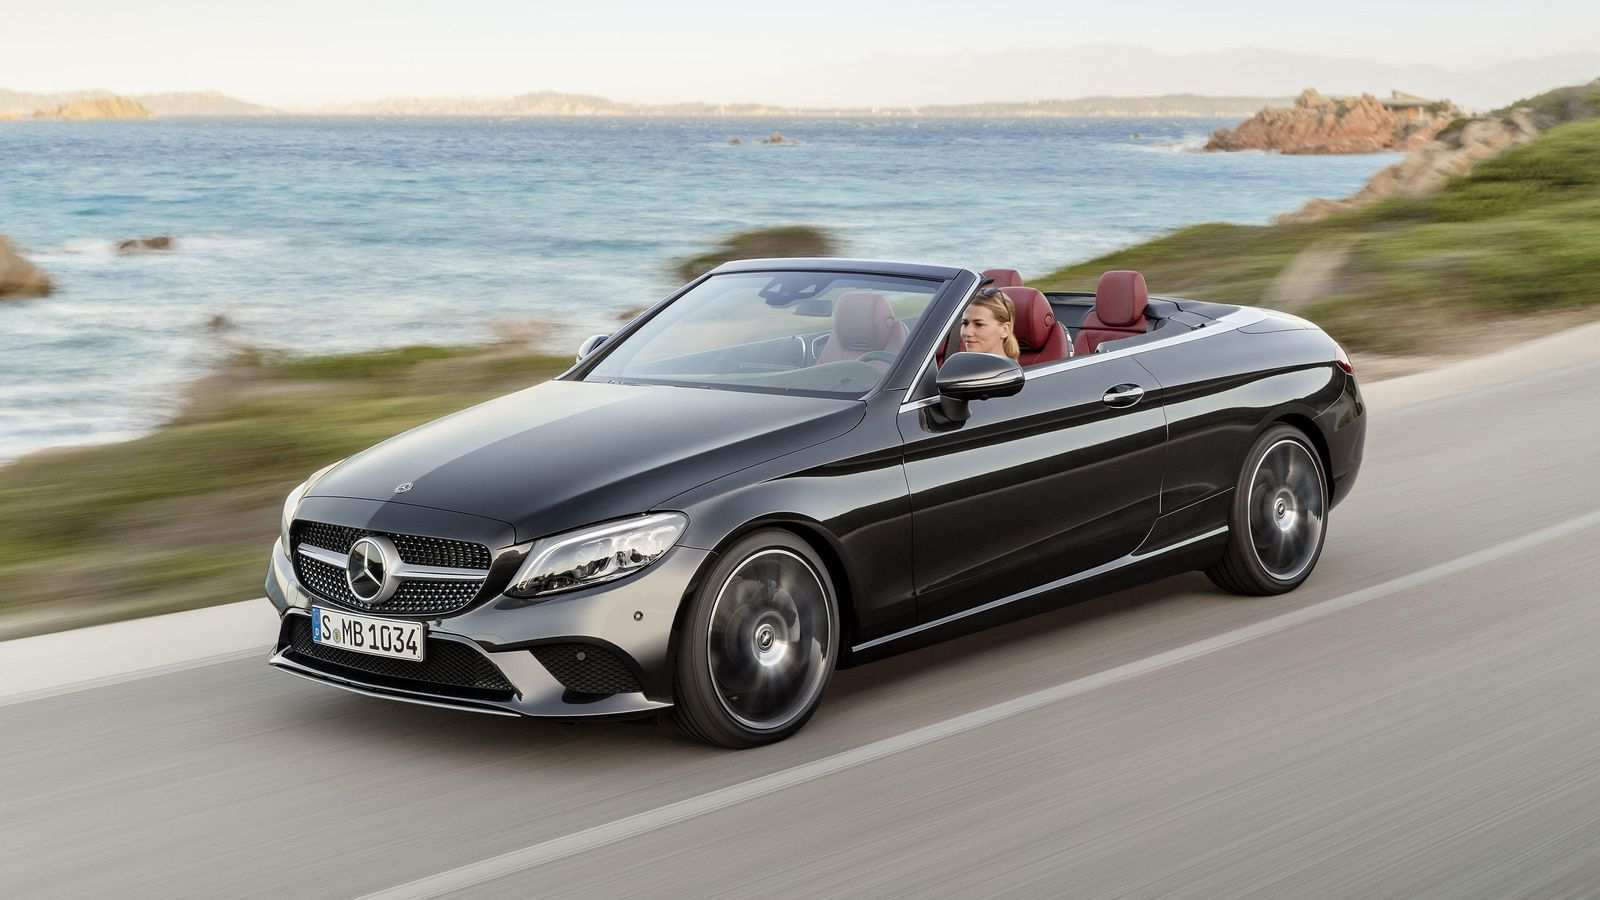 19 Concept of Mercedes C Class Coupe 2019 Price and Review with Mercedes C Class Coupe 2019